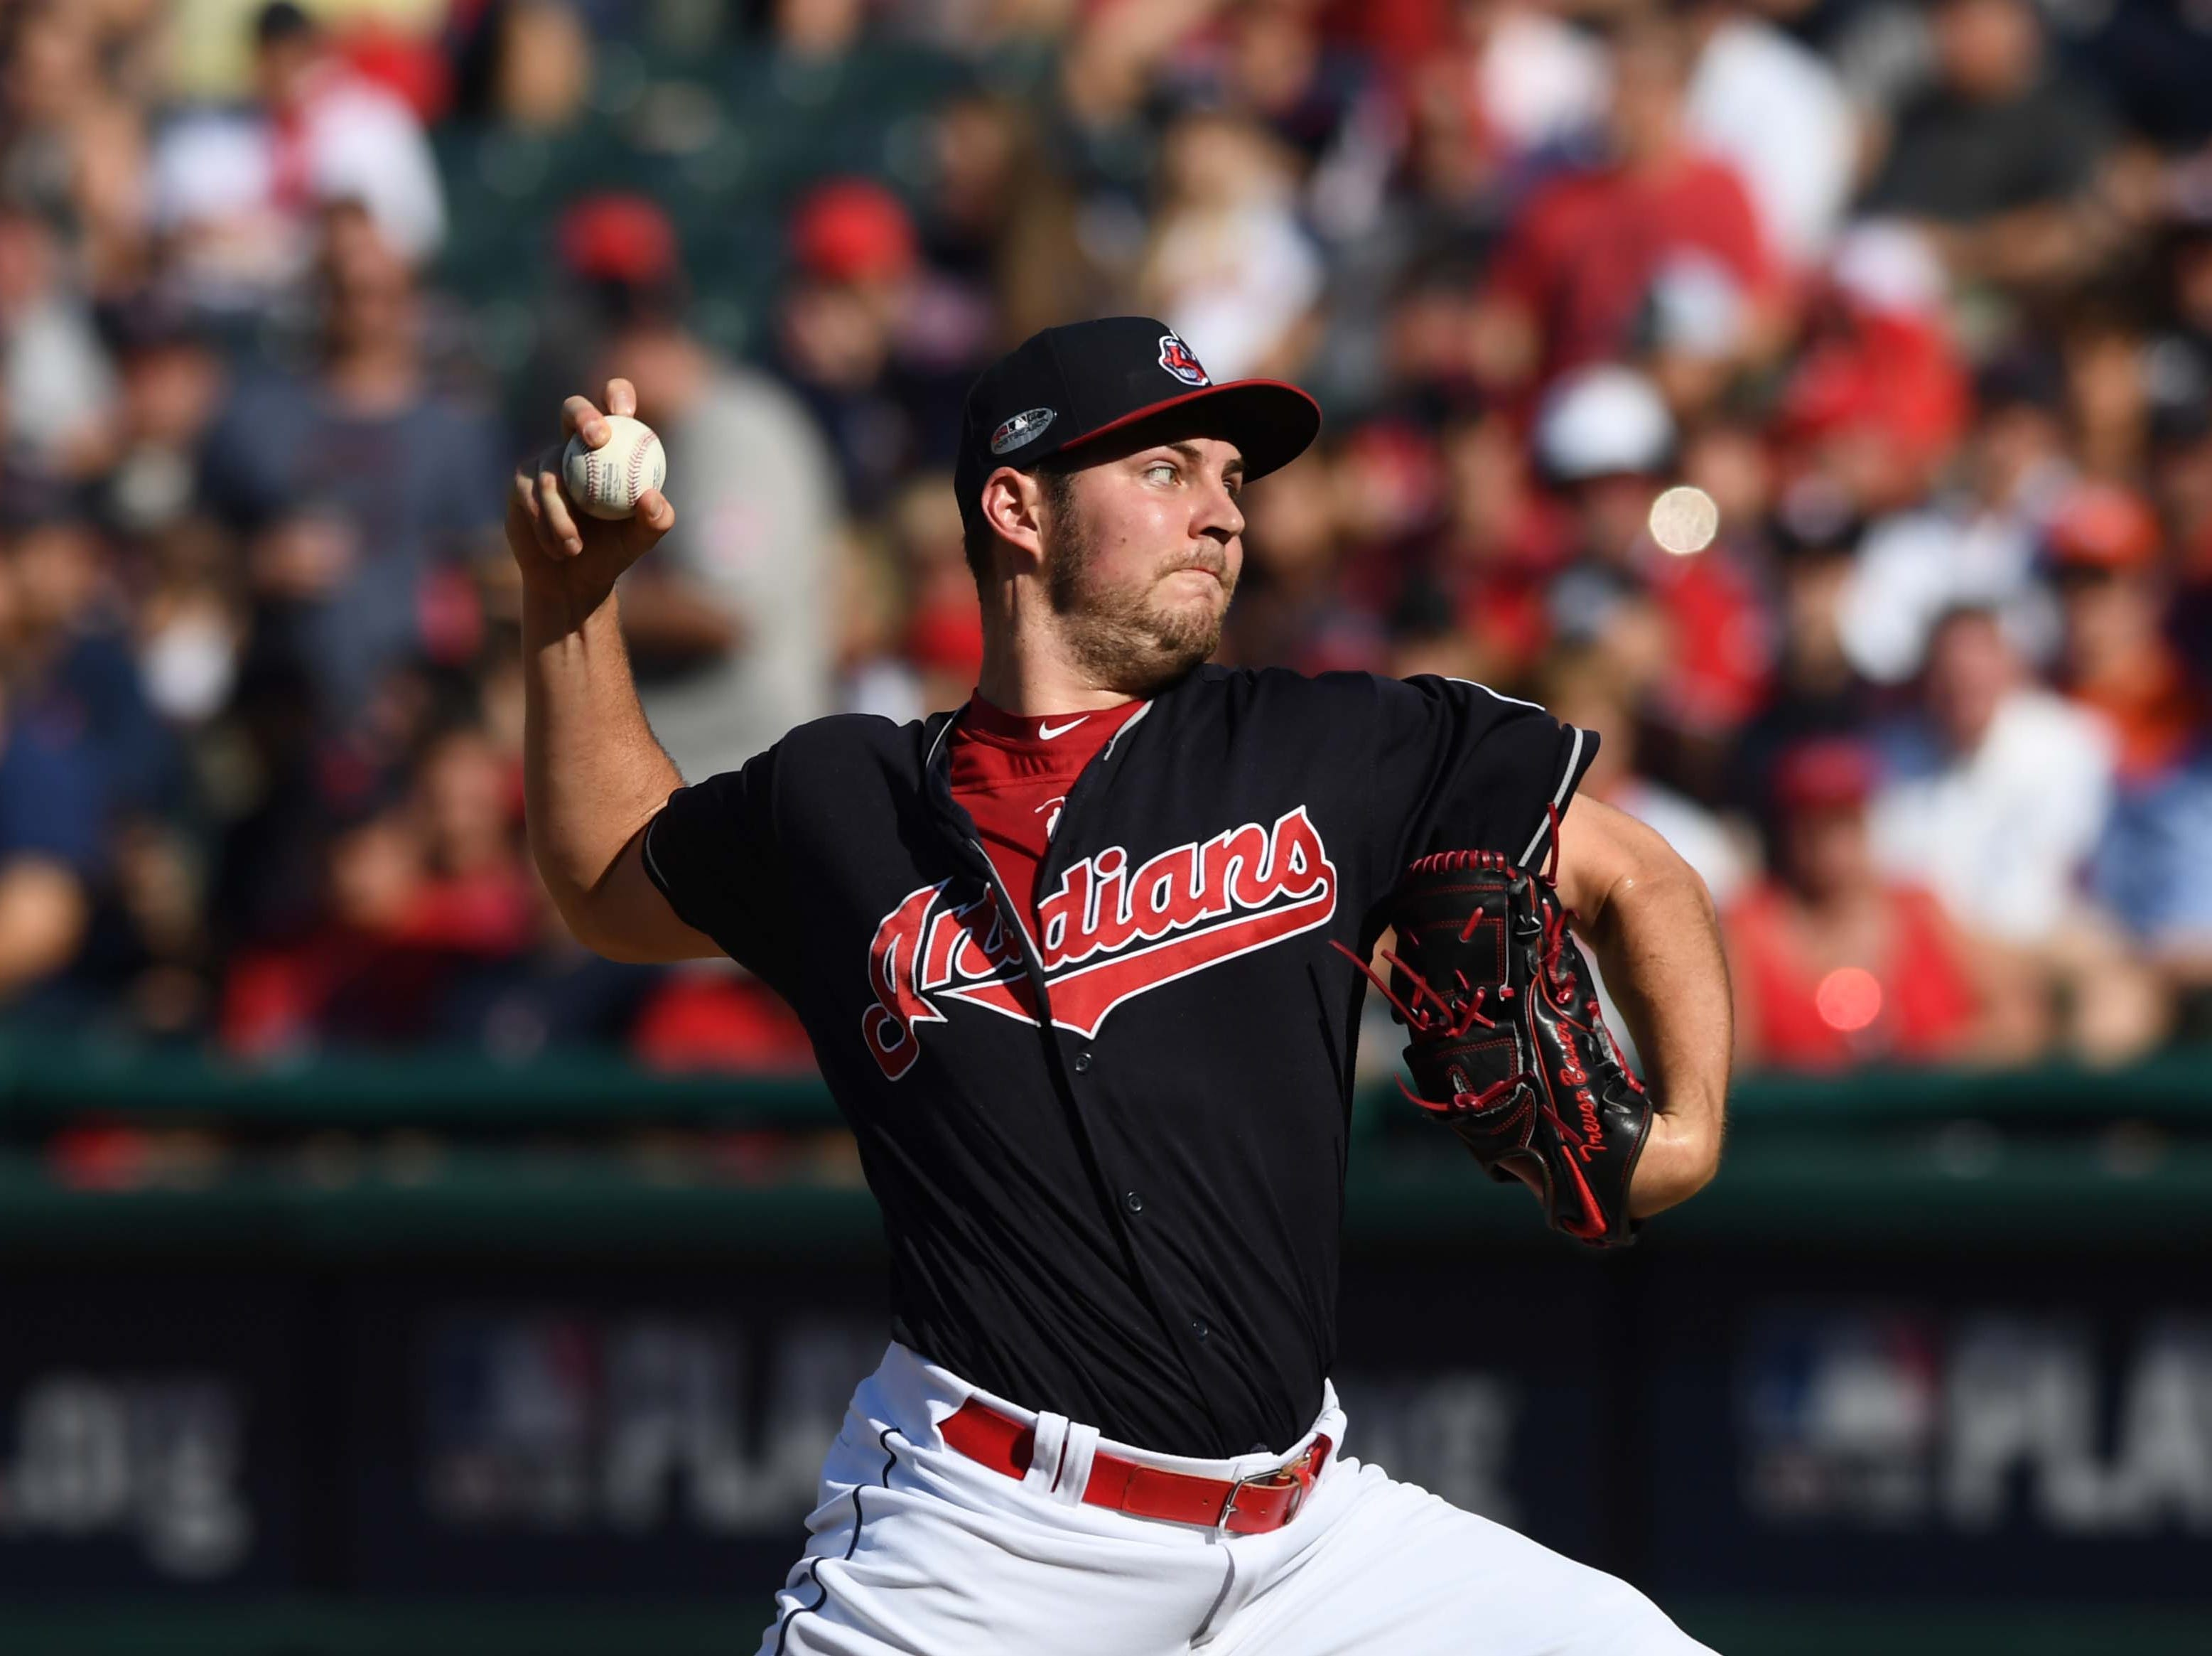 42. Trevor Bauer, Cleveland Indians starting pitcher.